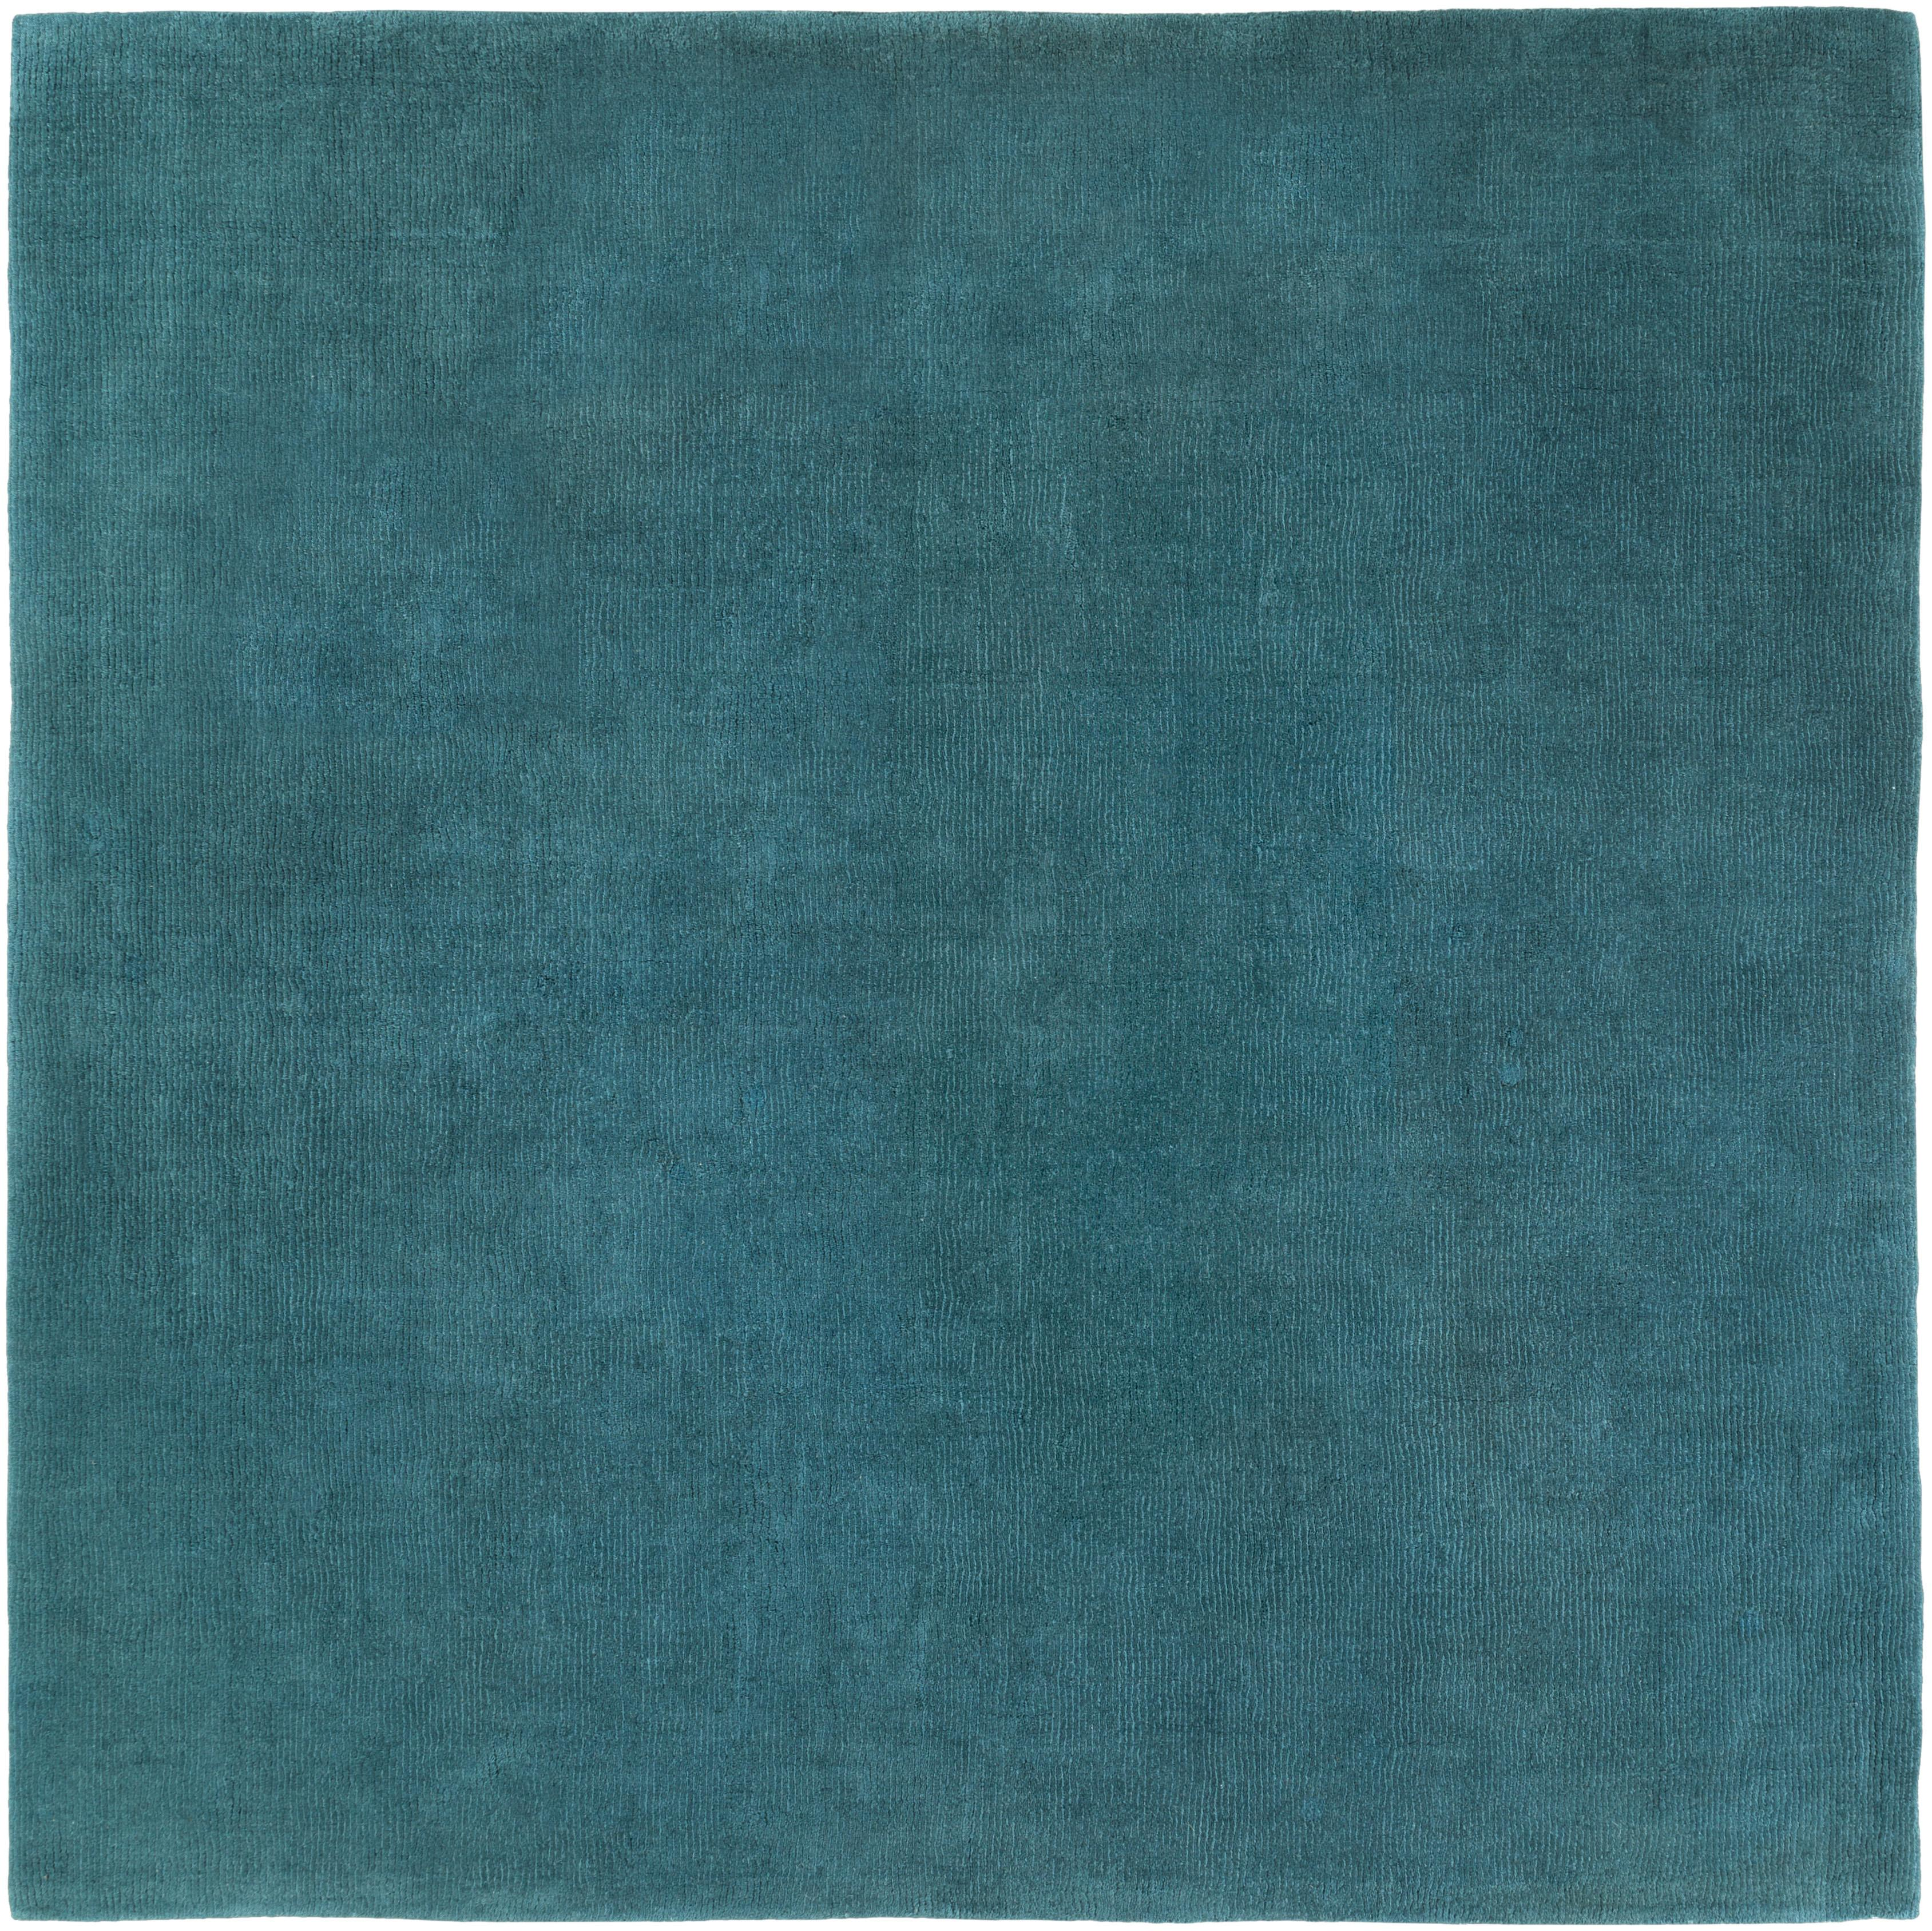 Surya Mystique 8' Square - Item Number: M5330-8SQ